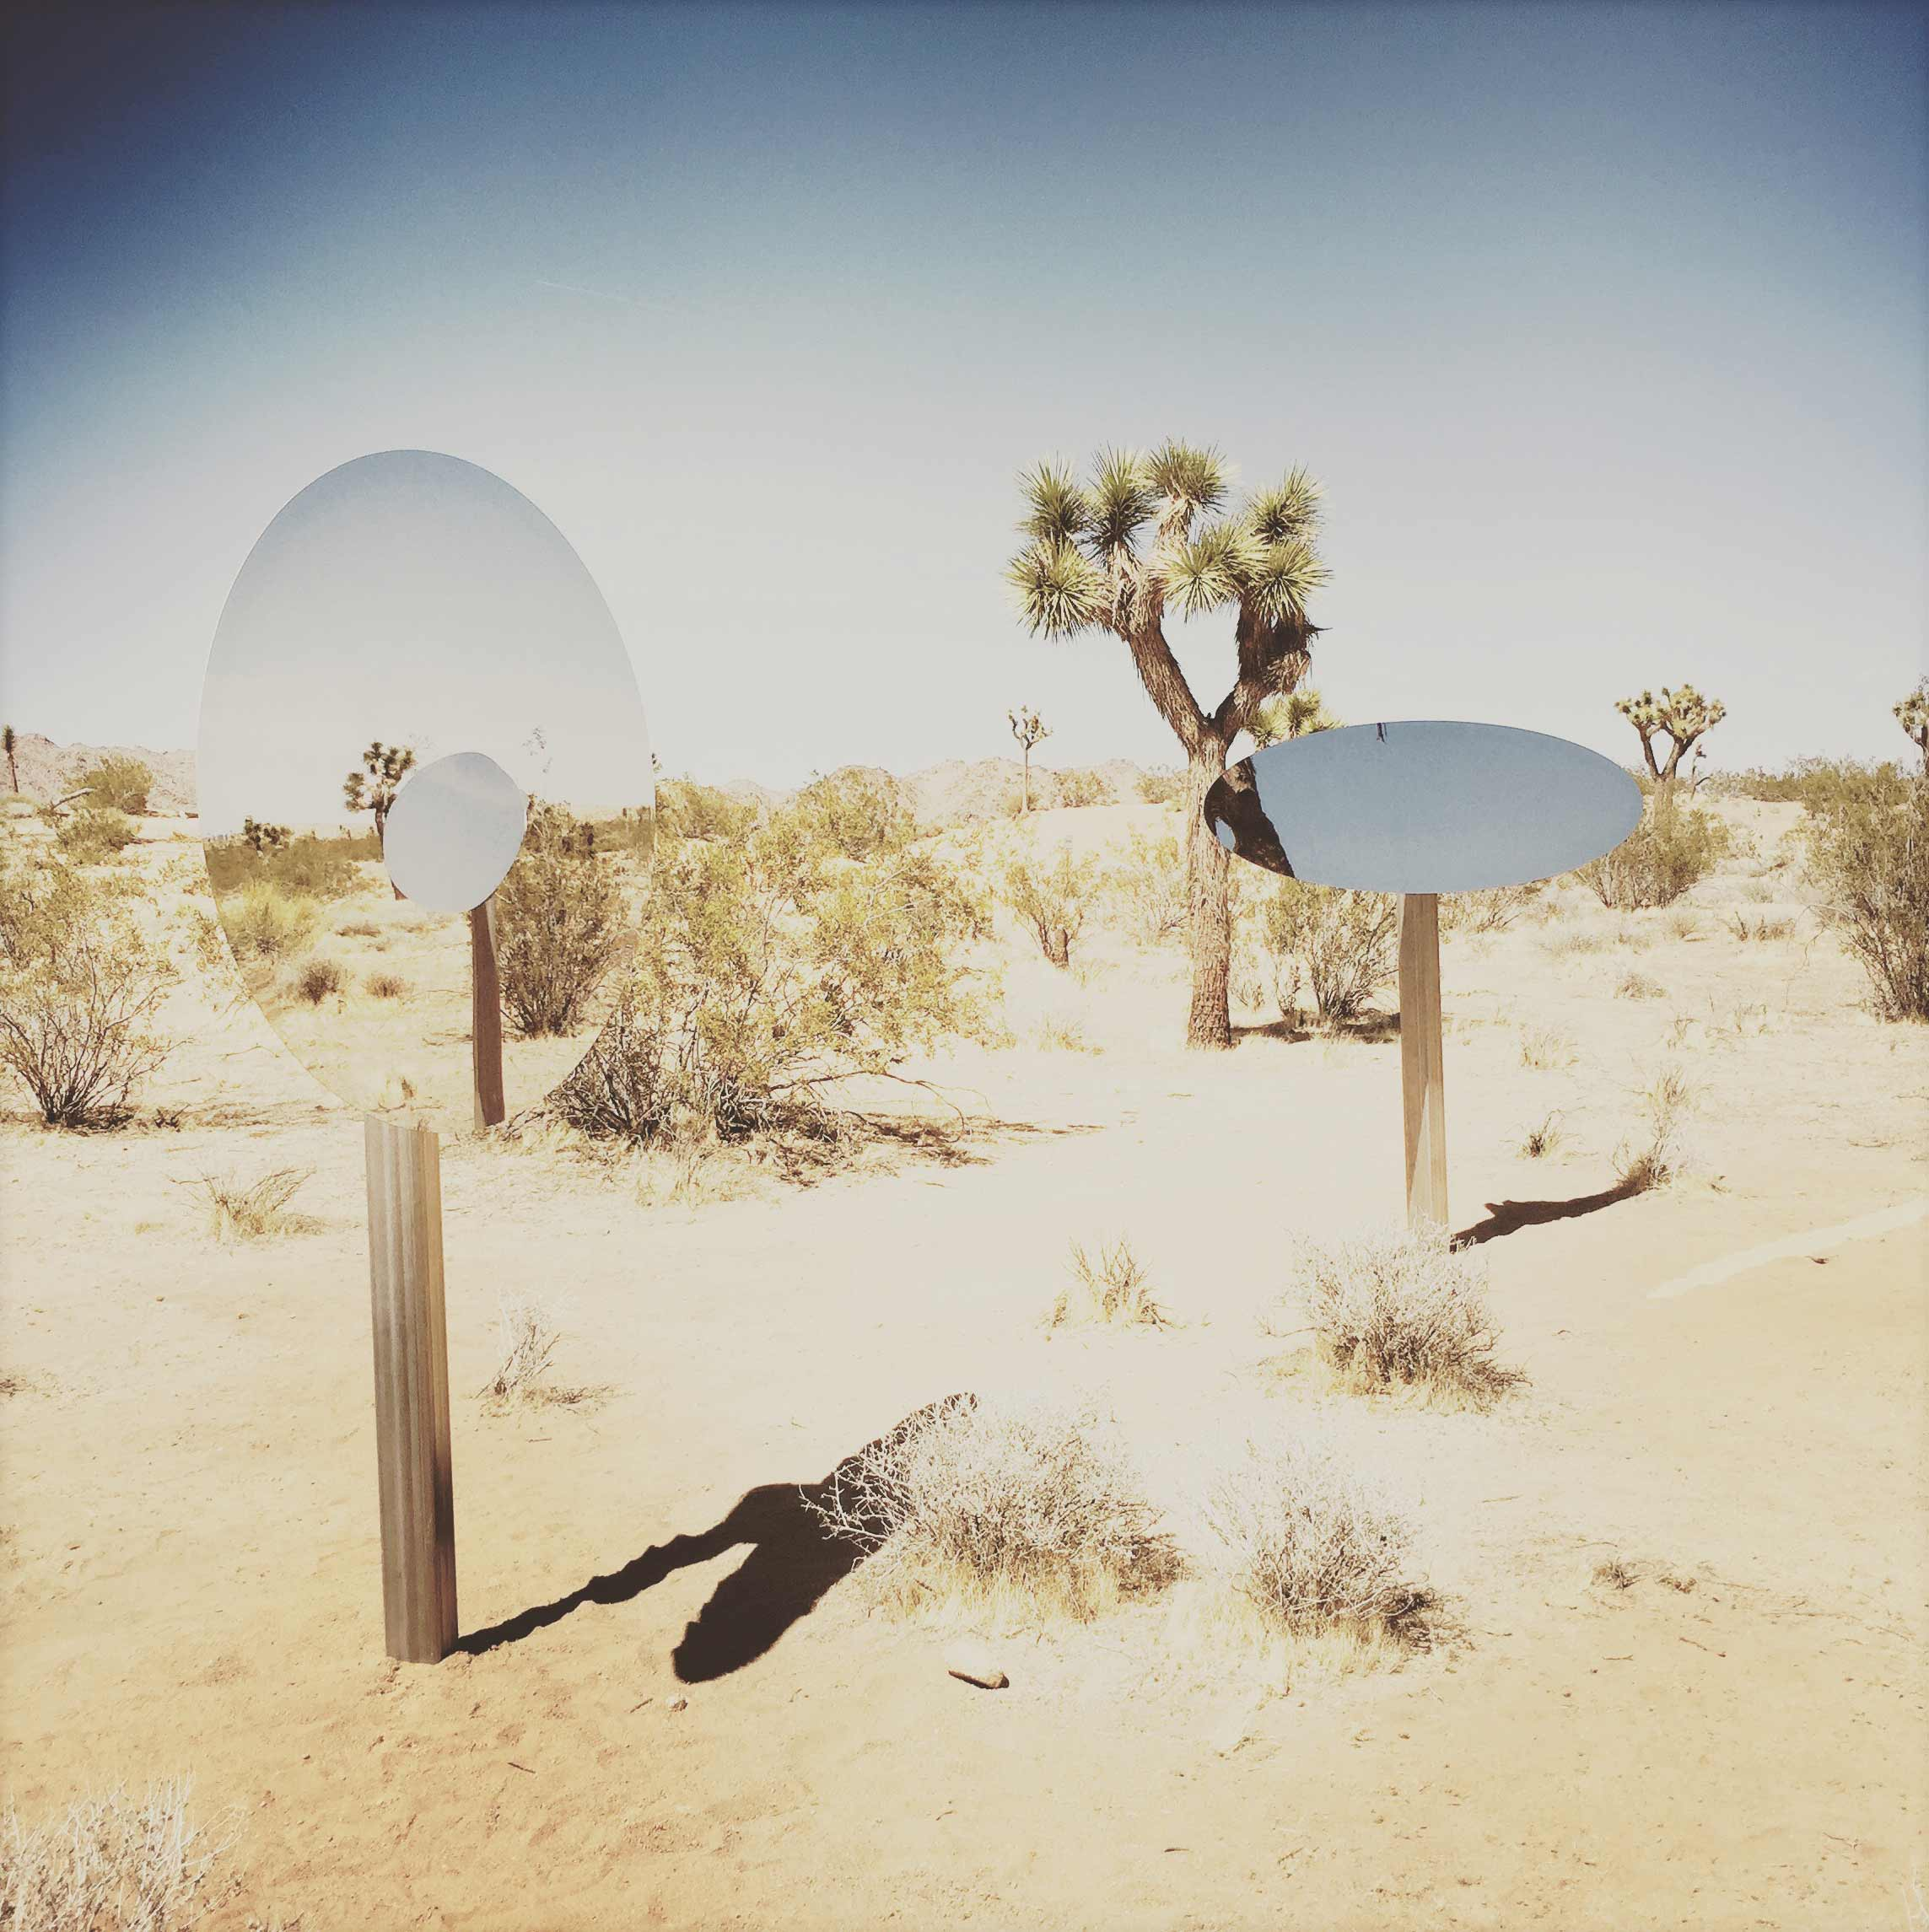 Sarah Vanderlip, Untitled (Double Ellipses), Aluminum and mirror-polished stainless steel, 2018